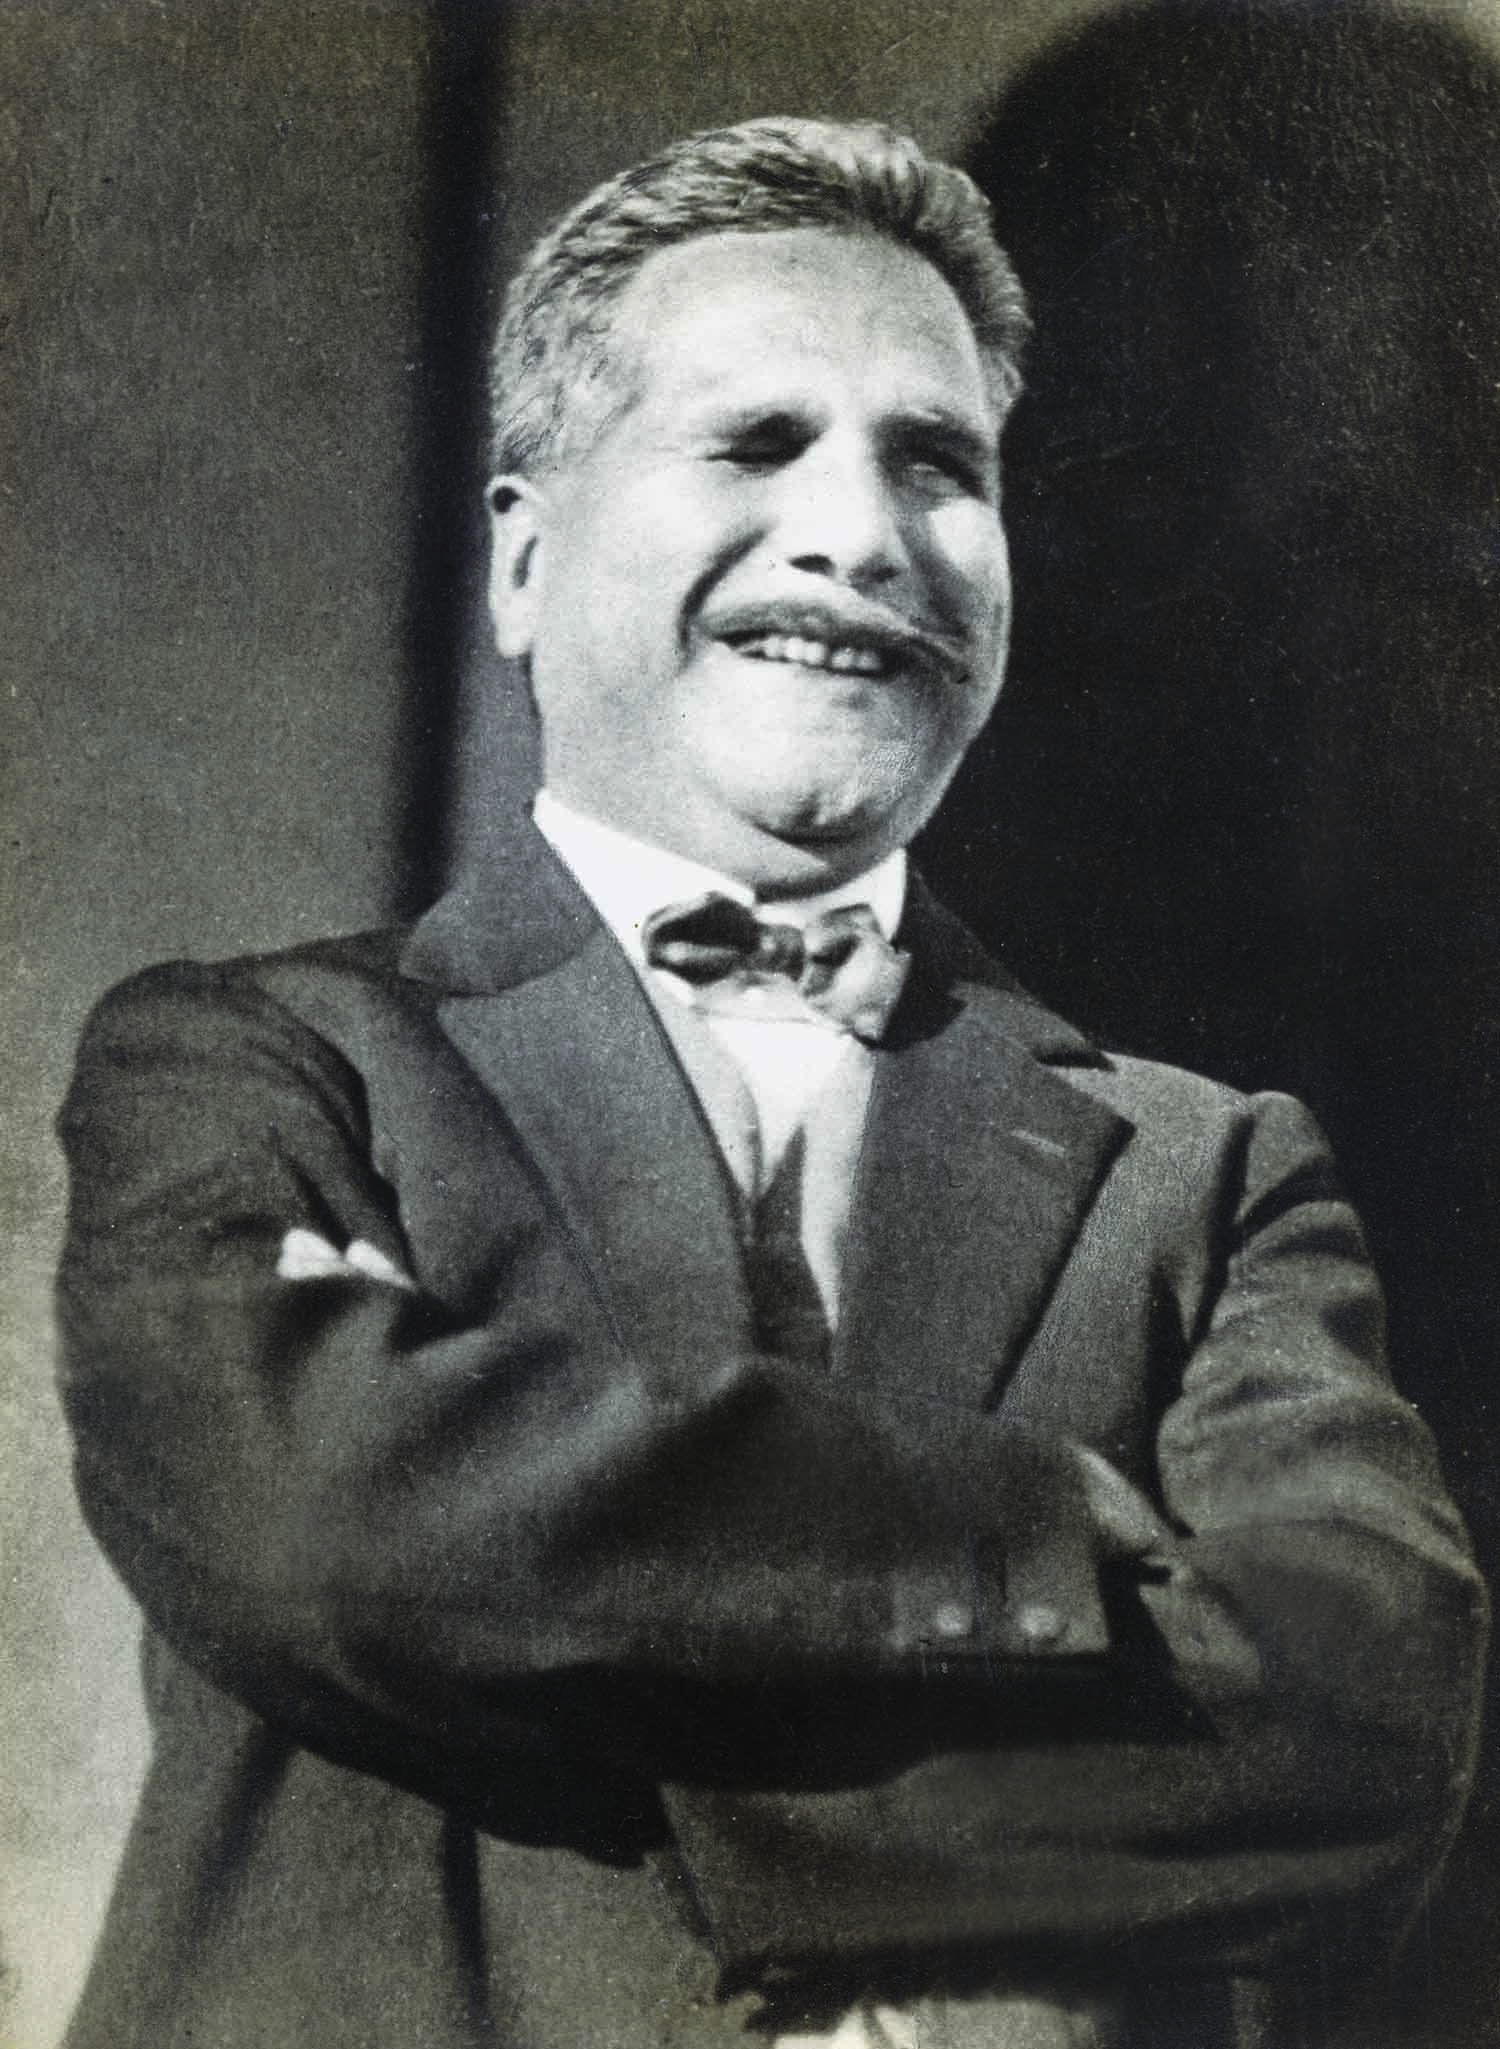 ELEGANTLY dressed in a suit, Allama Iqbal is seen having a lighter moment. | Photo: The Allama Iqbal Collection